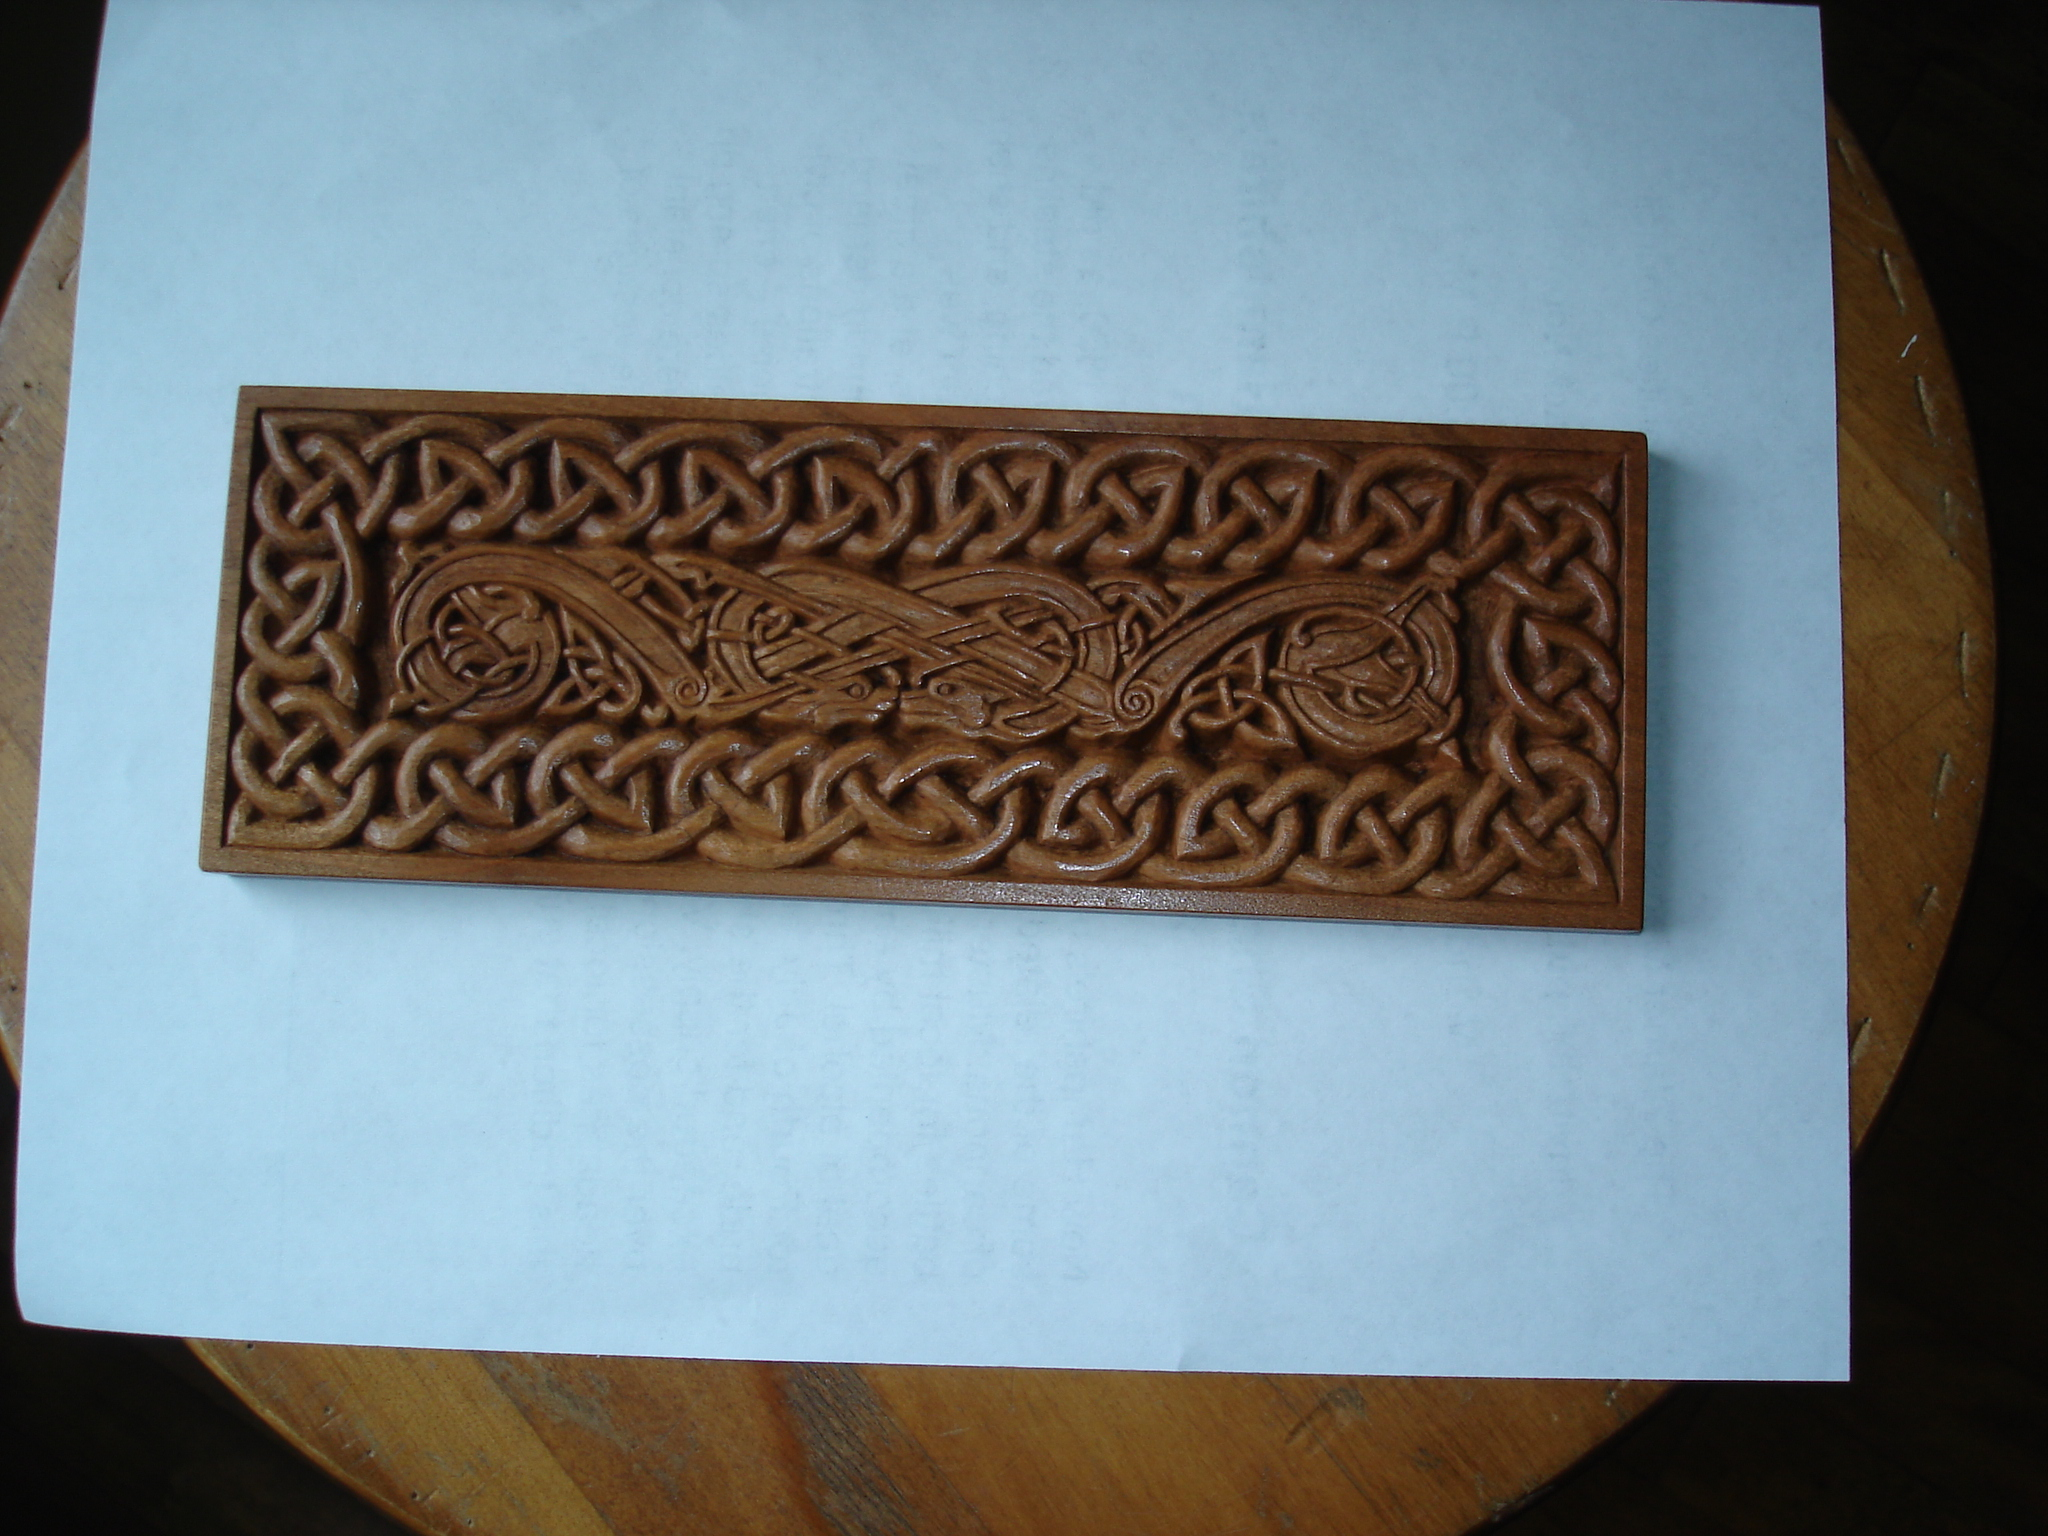 This is a second plaque carved for the League of NH Craftsmen's Craft Center